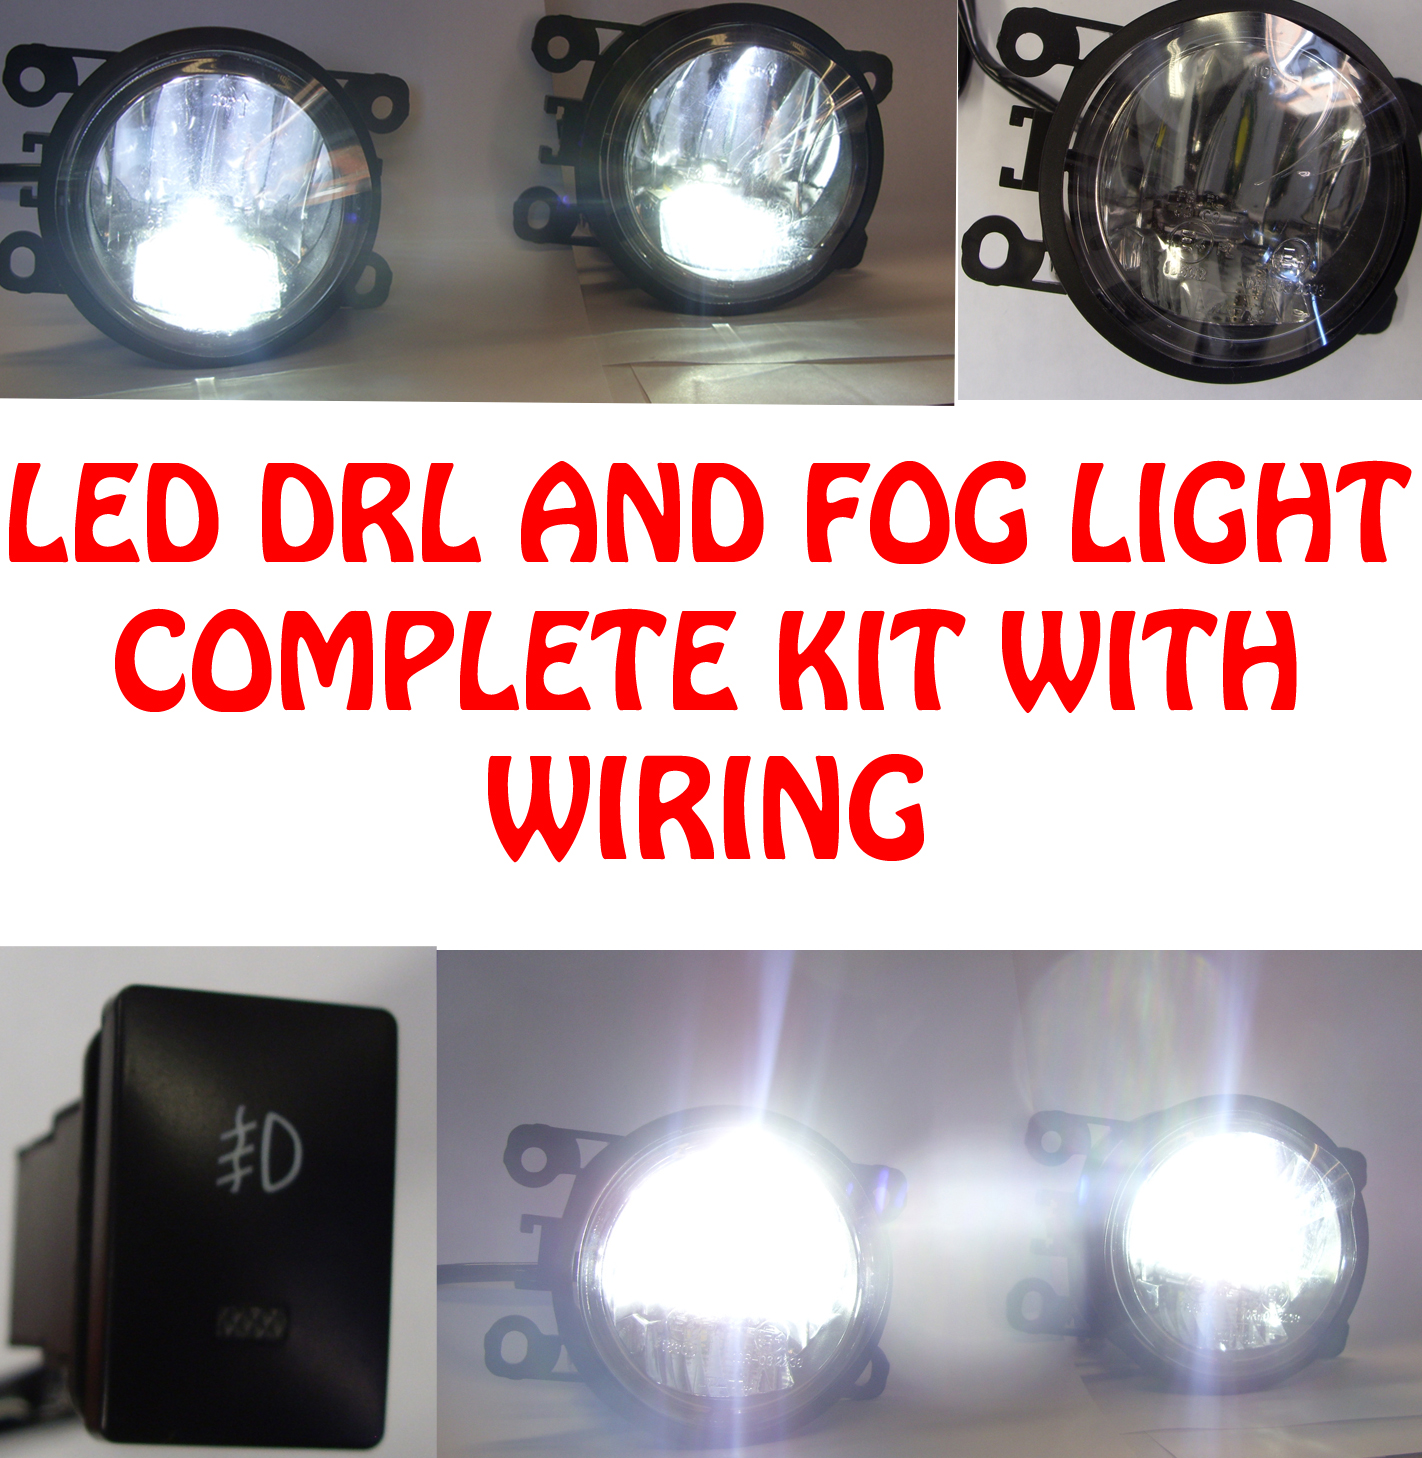 High Power Led Drl And Fog Lights With Wiring Switch For Ford Focus Sentinel 05